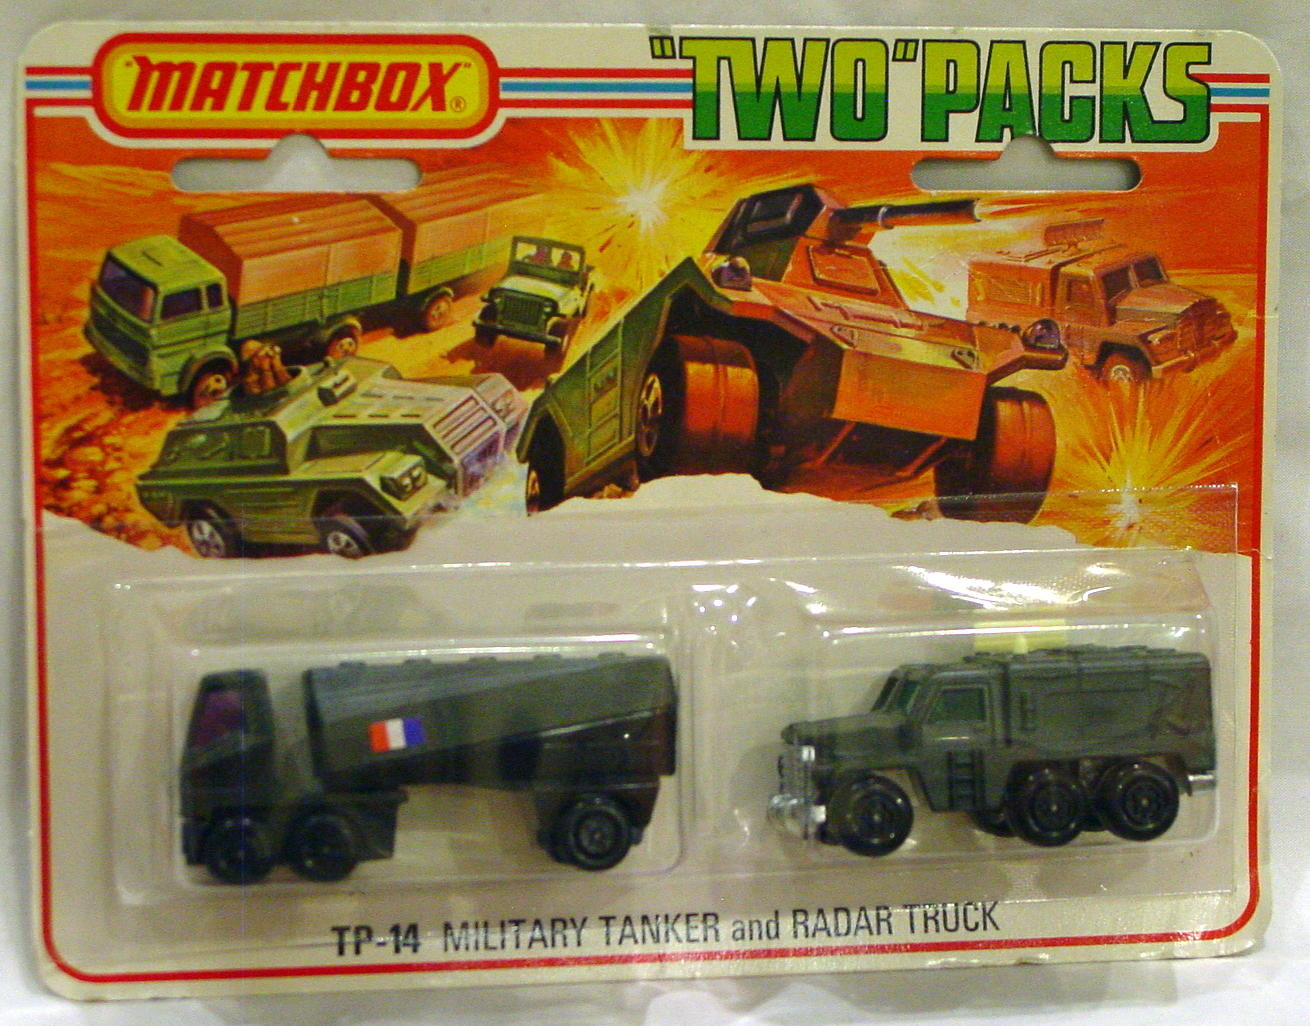 Twin Pack 14 A 2 - OLIVE DRAB 63B6 Tanker French 16A3 Badger